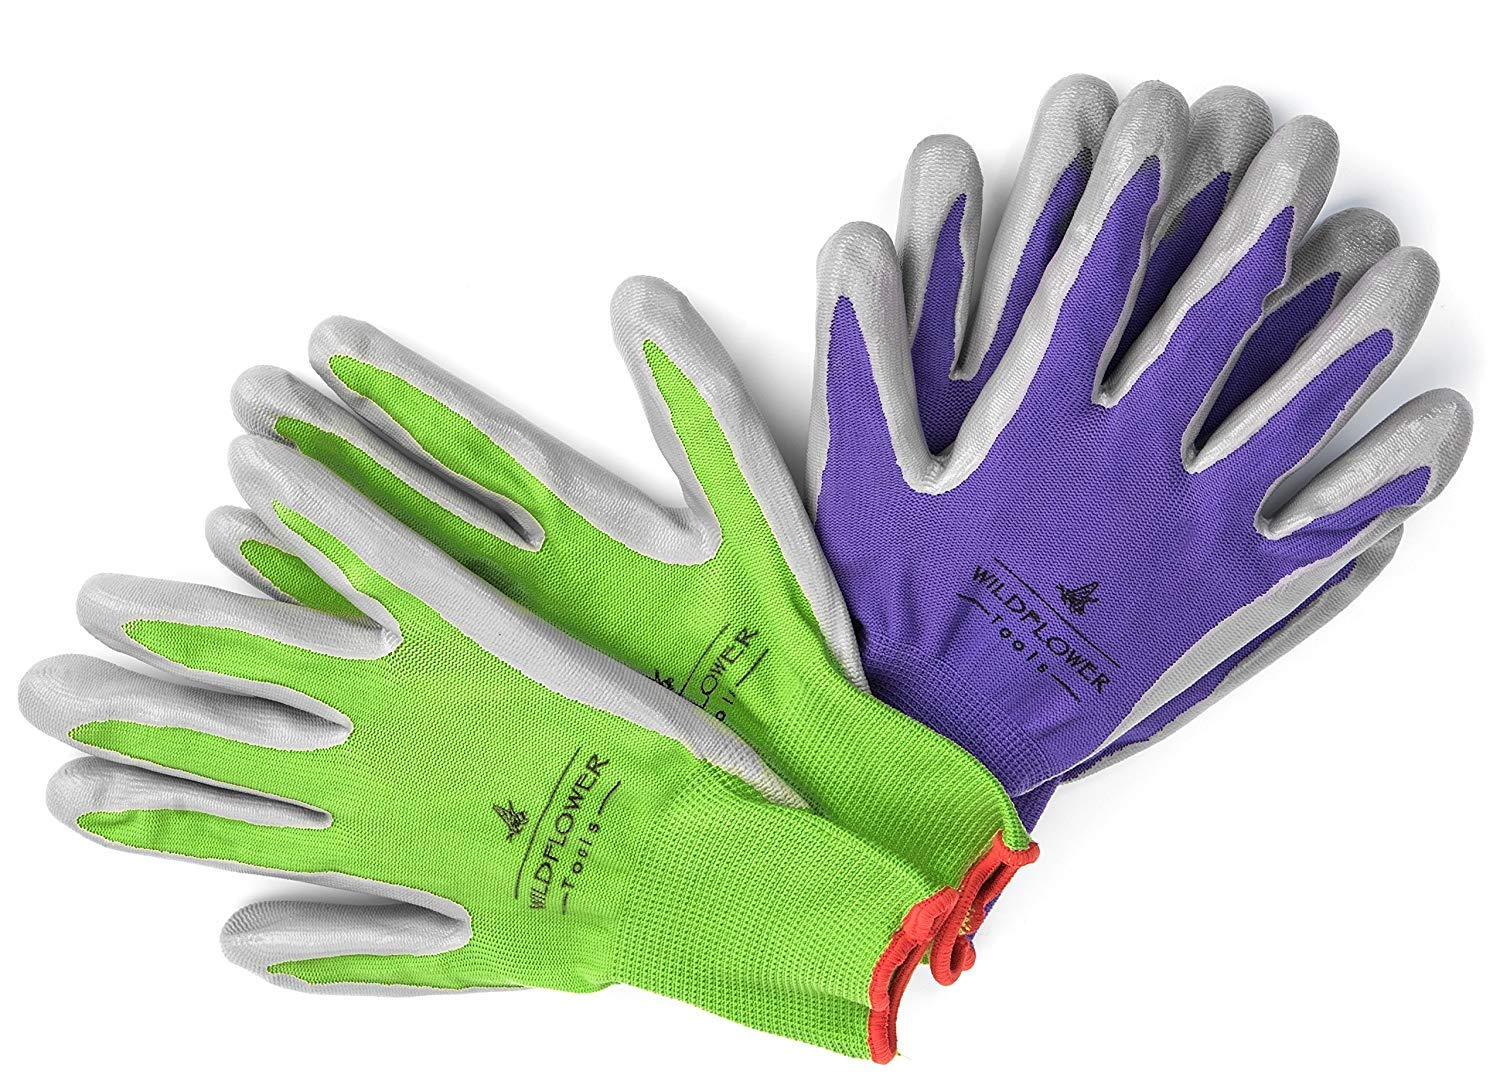 WILDFLOWER Tools Gardening Gloves for Women and Men - Nitrile Coating for Protection (Medium, Purple Pair/Green Pair with White Cuff Hem)